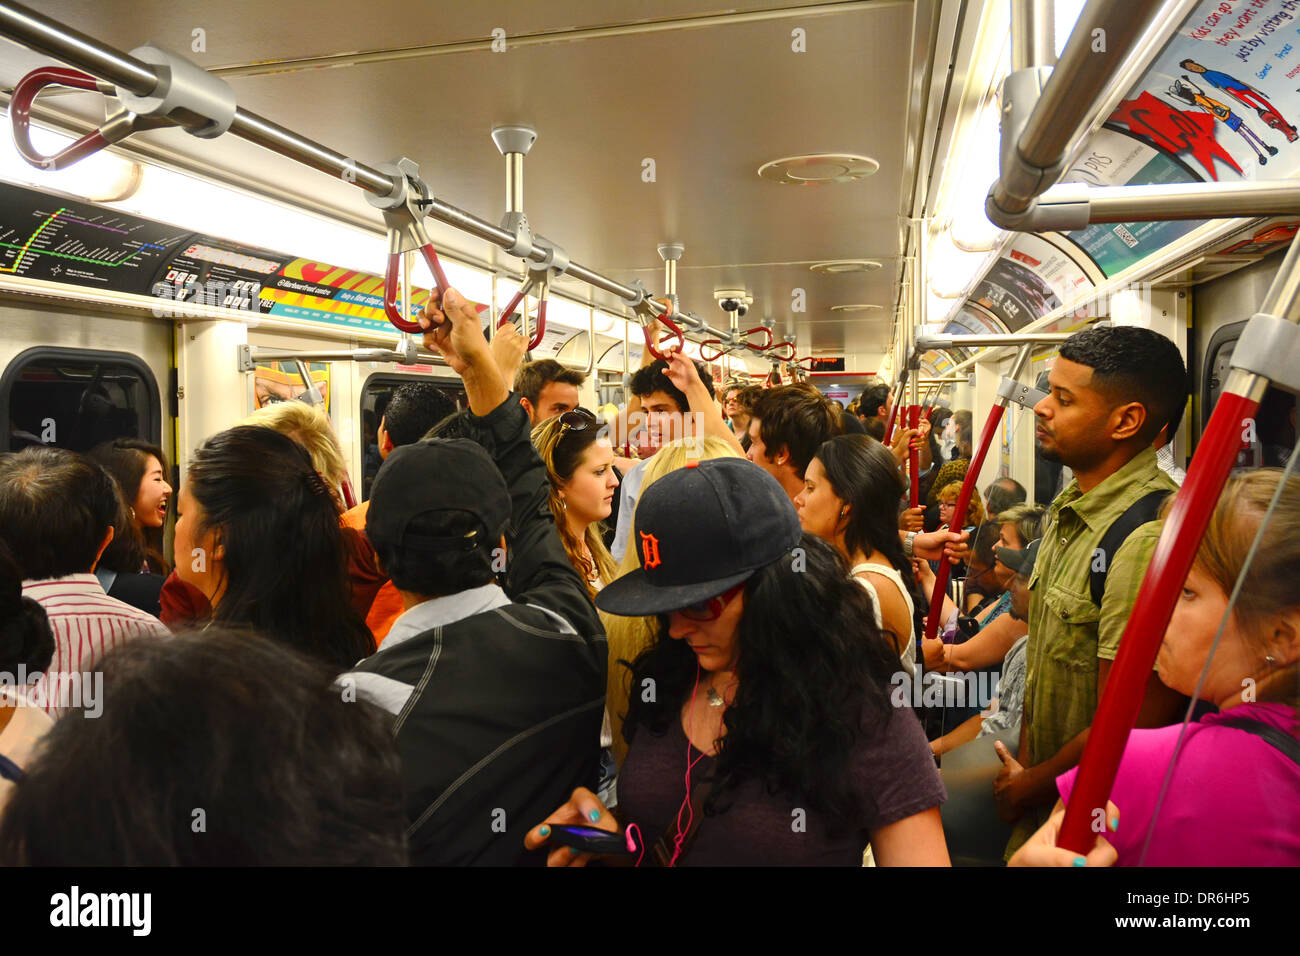 Subway rush hour passengers, Toronto - Stock Image